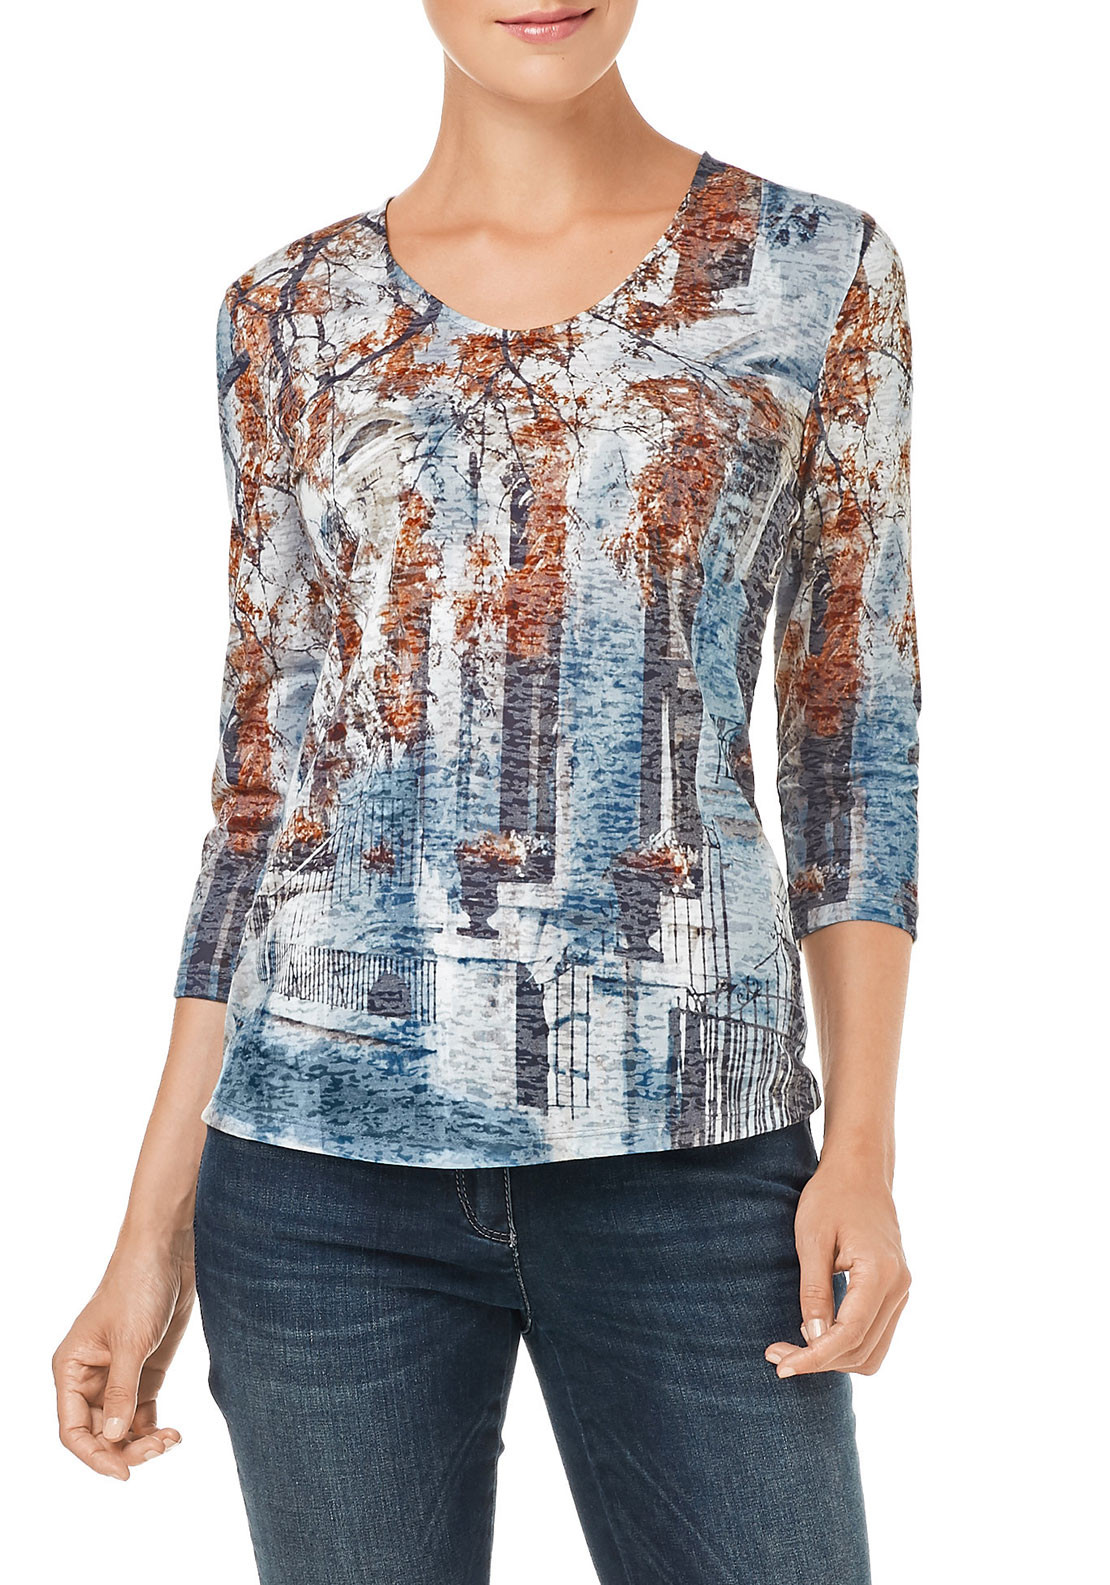 Gerry Weber City Print Top, Multi-Coloured